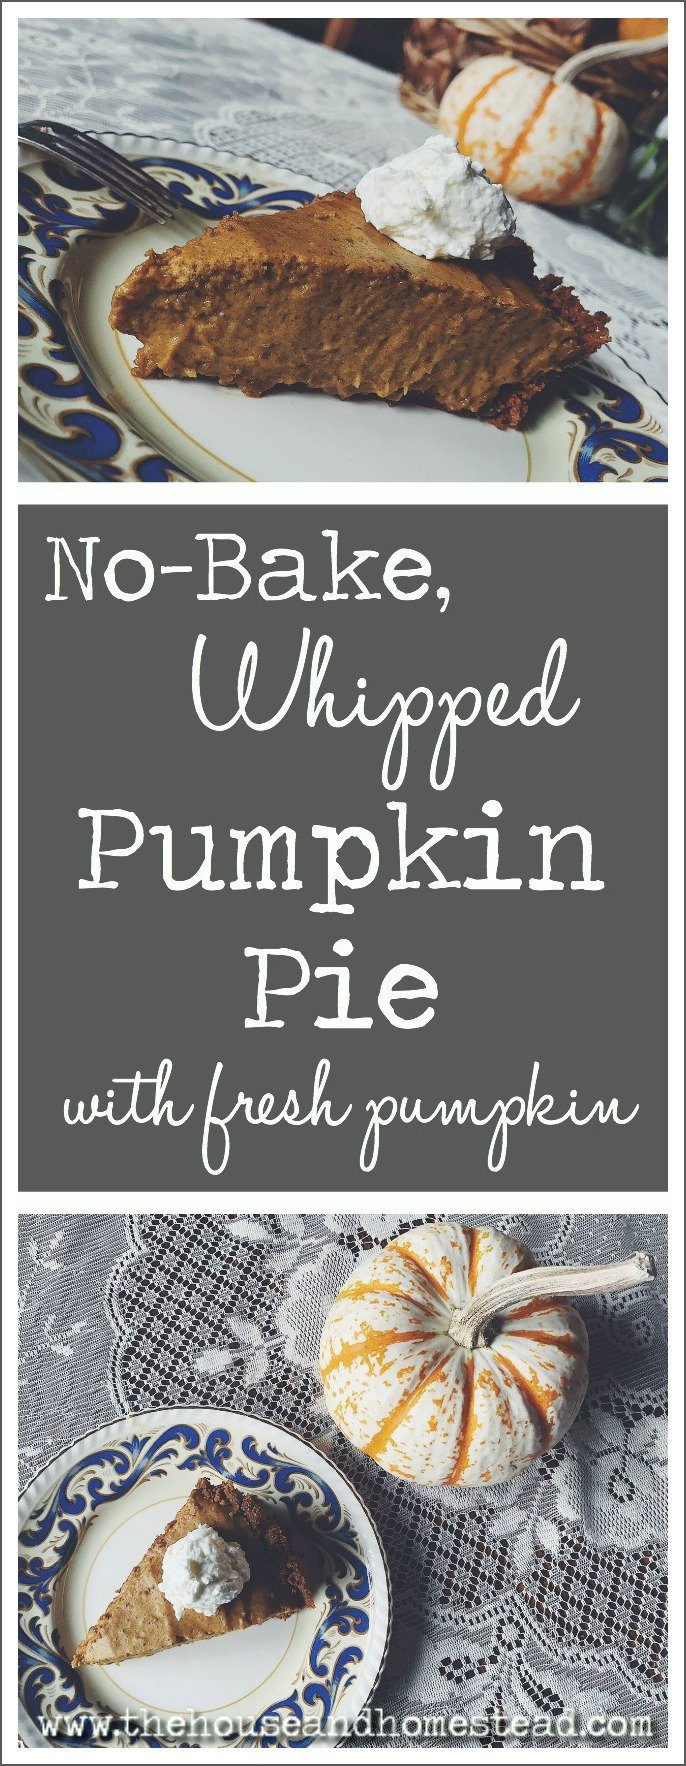 This homemade no-bake, whipped pumpkin pie is made completely from scratch and uses real, fresh pumpkin instead of canned pumpkin pie filling. It's made with a ginger cookie crust and the pumpkin pie filling is mixed with whipped cream to make it light and fluffy. It puts all other pumpkin pies to shame!